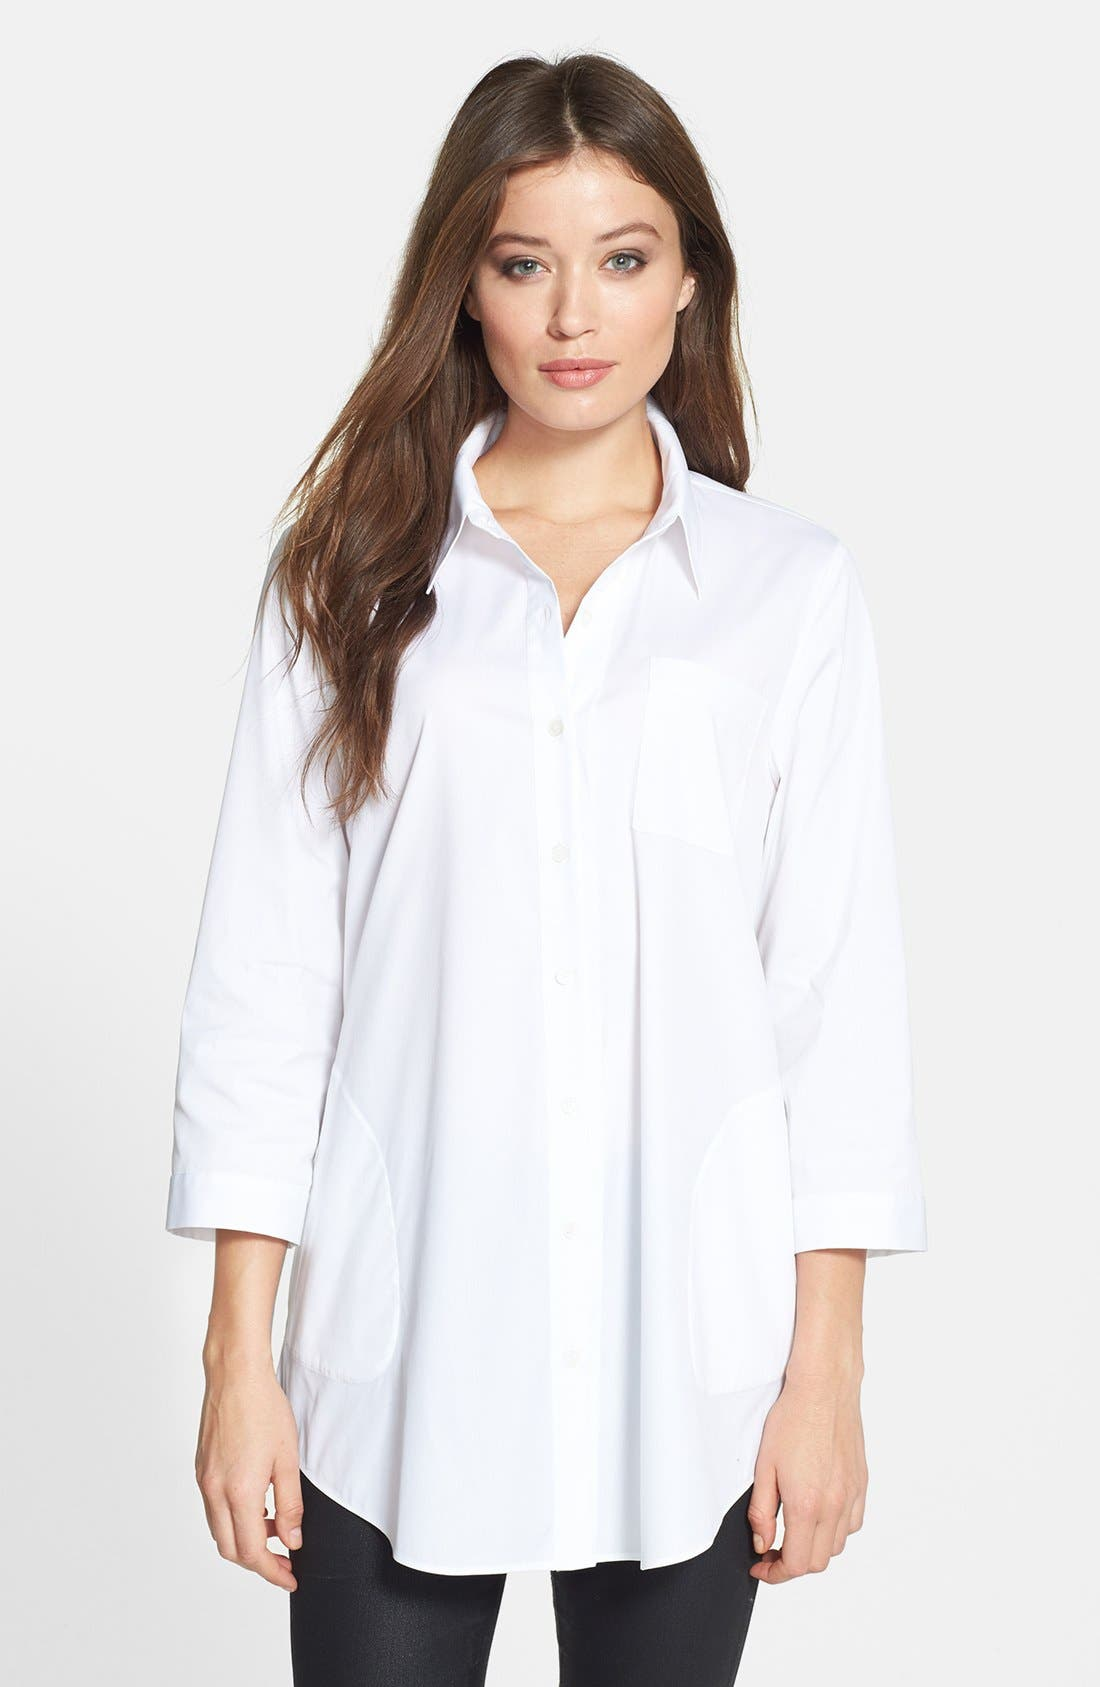 Alternate Image 1 Selected - Lafayette 148 New York 'Tierny - Excursion Stretch' Tunic Shirt